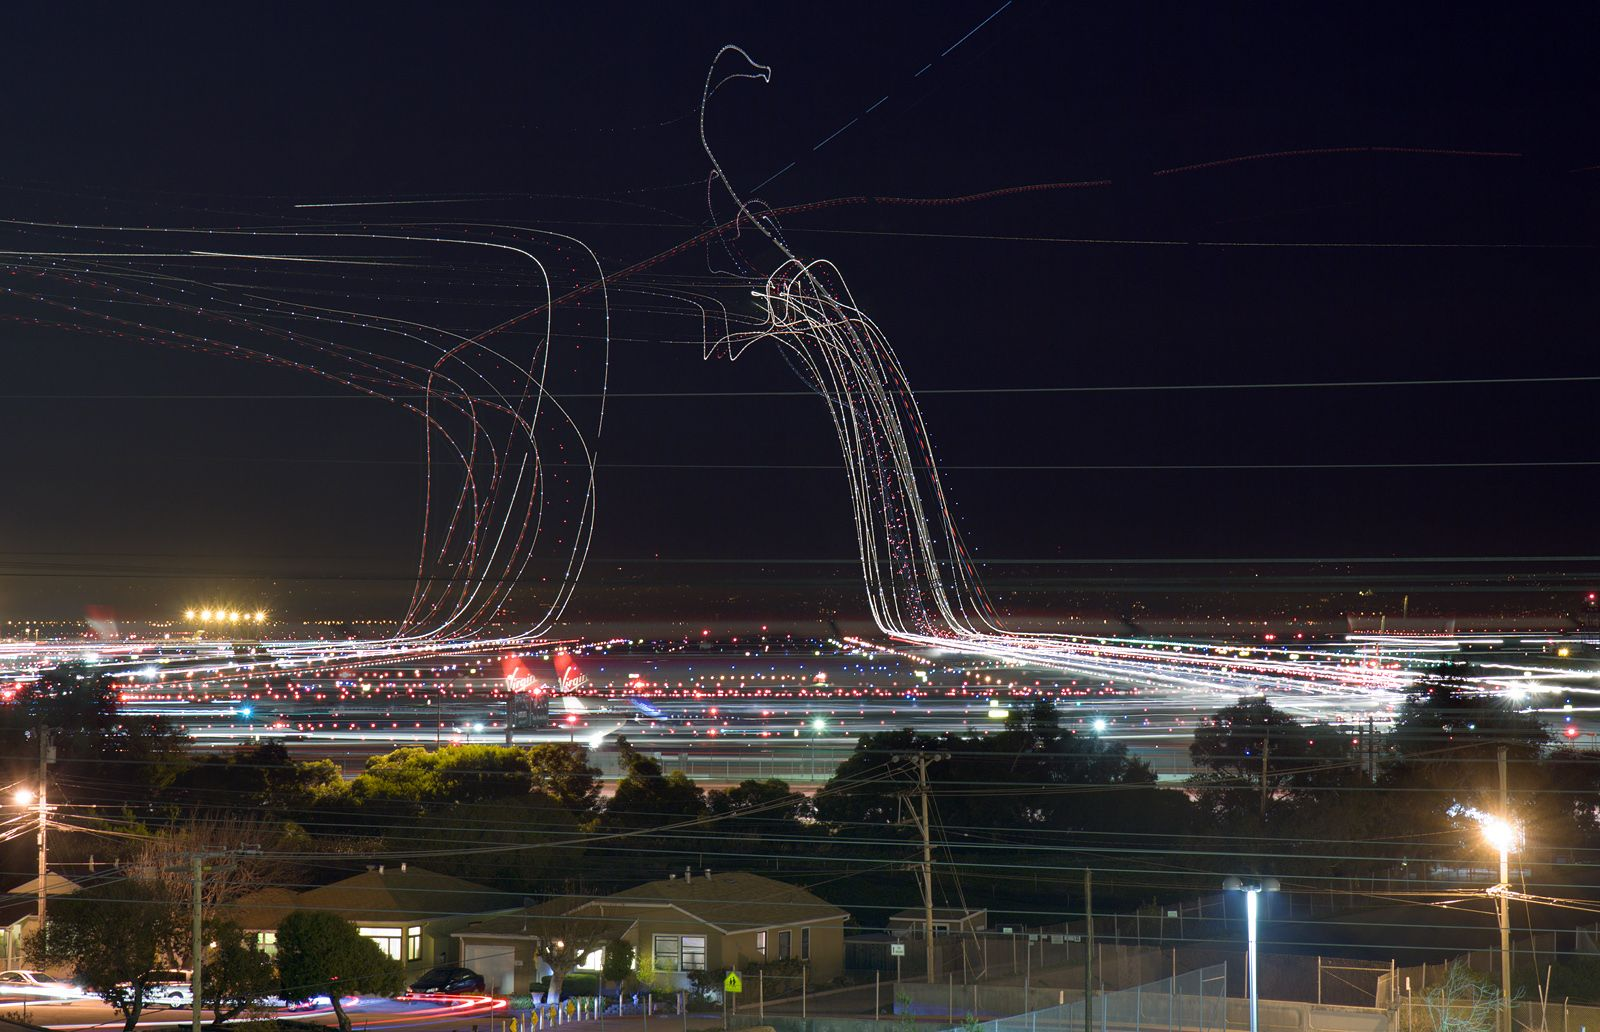 SFO-rush-hour-on-Friday-December-18th-2009-at-10pm